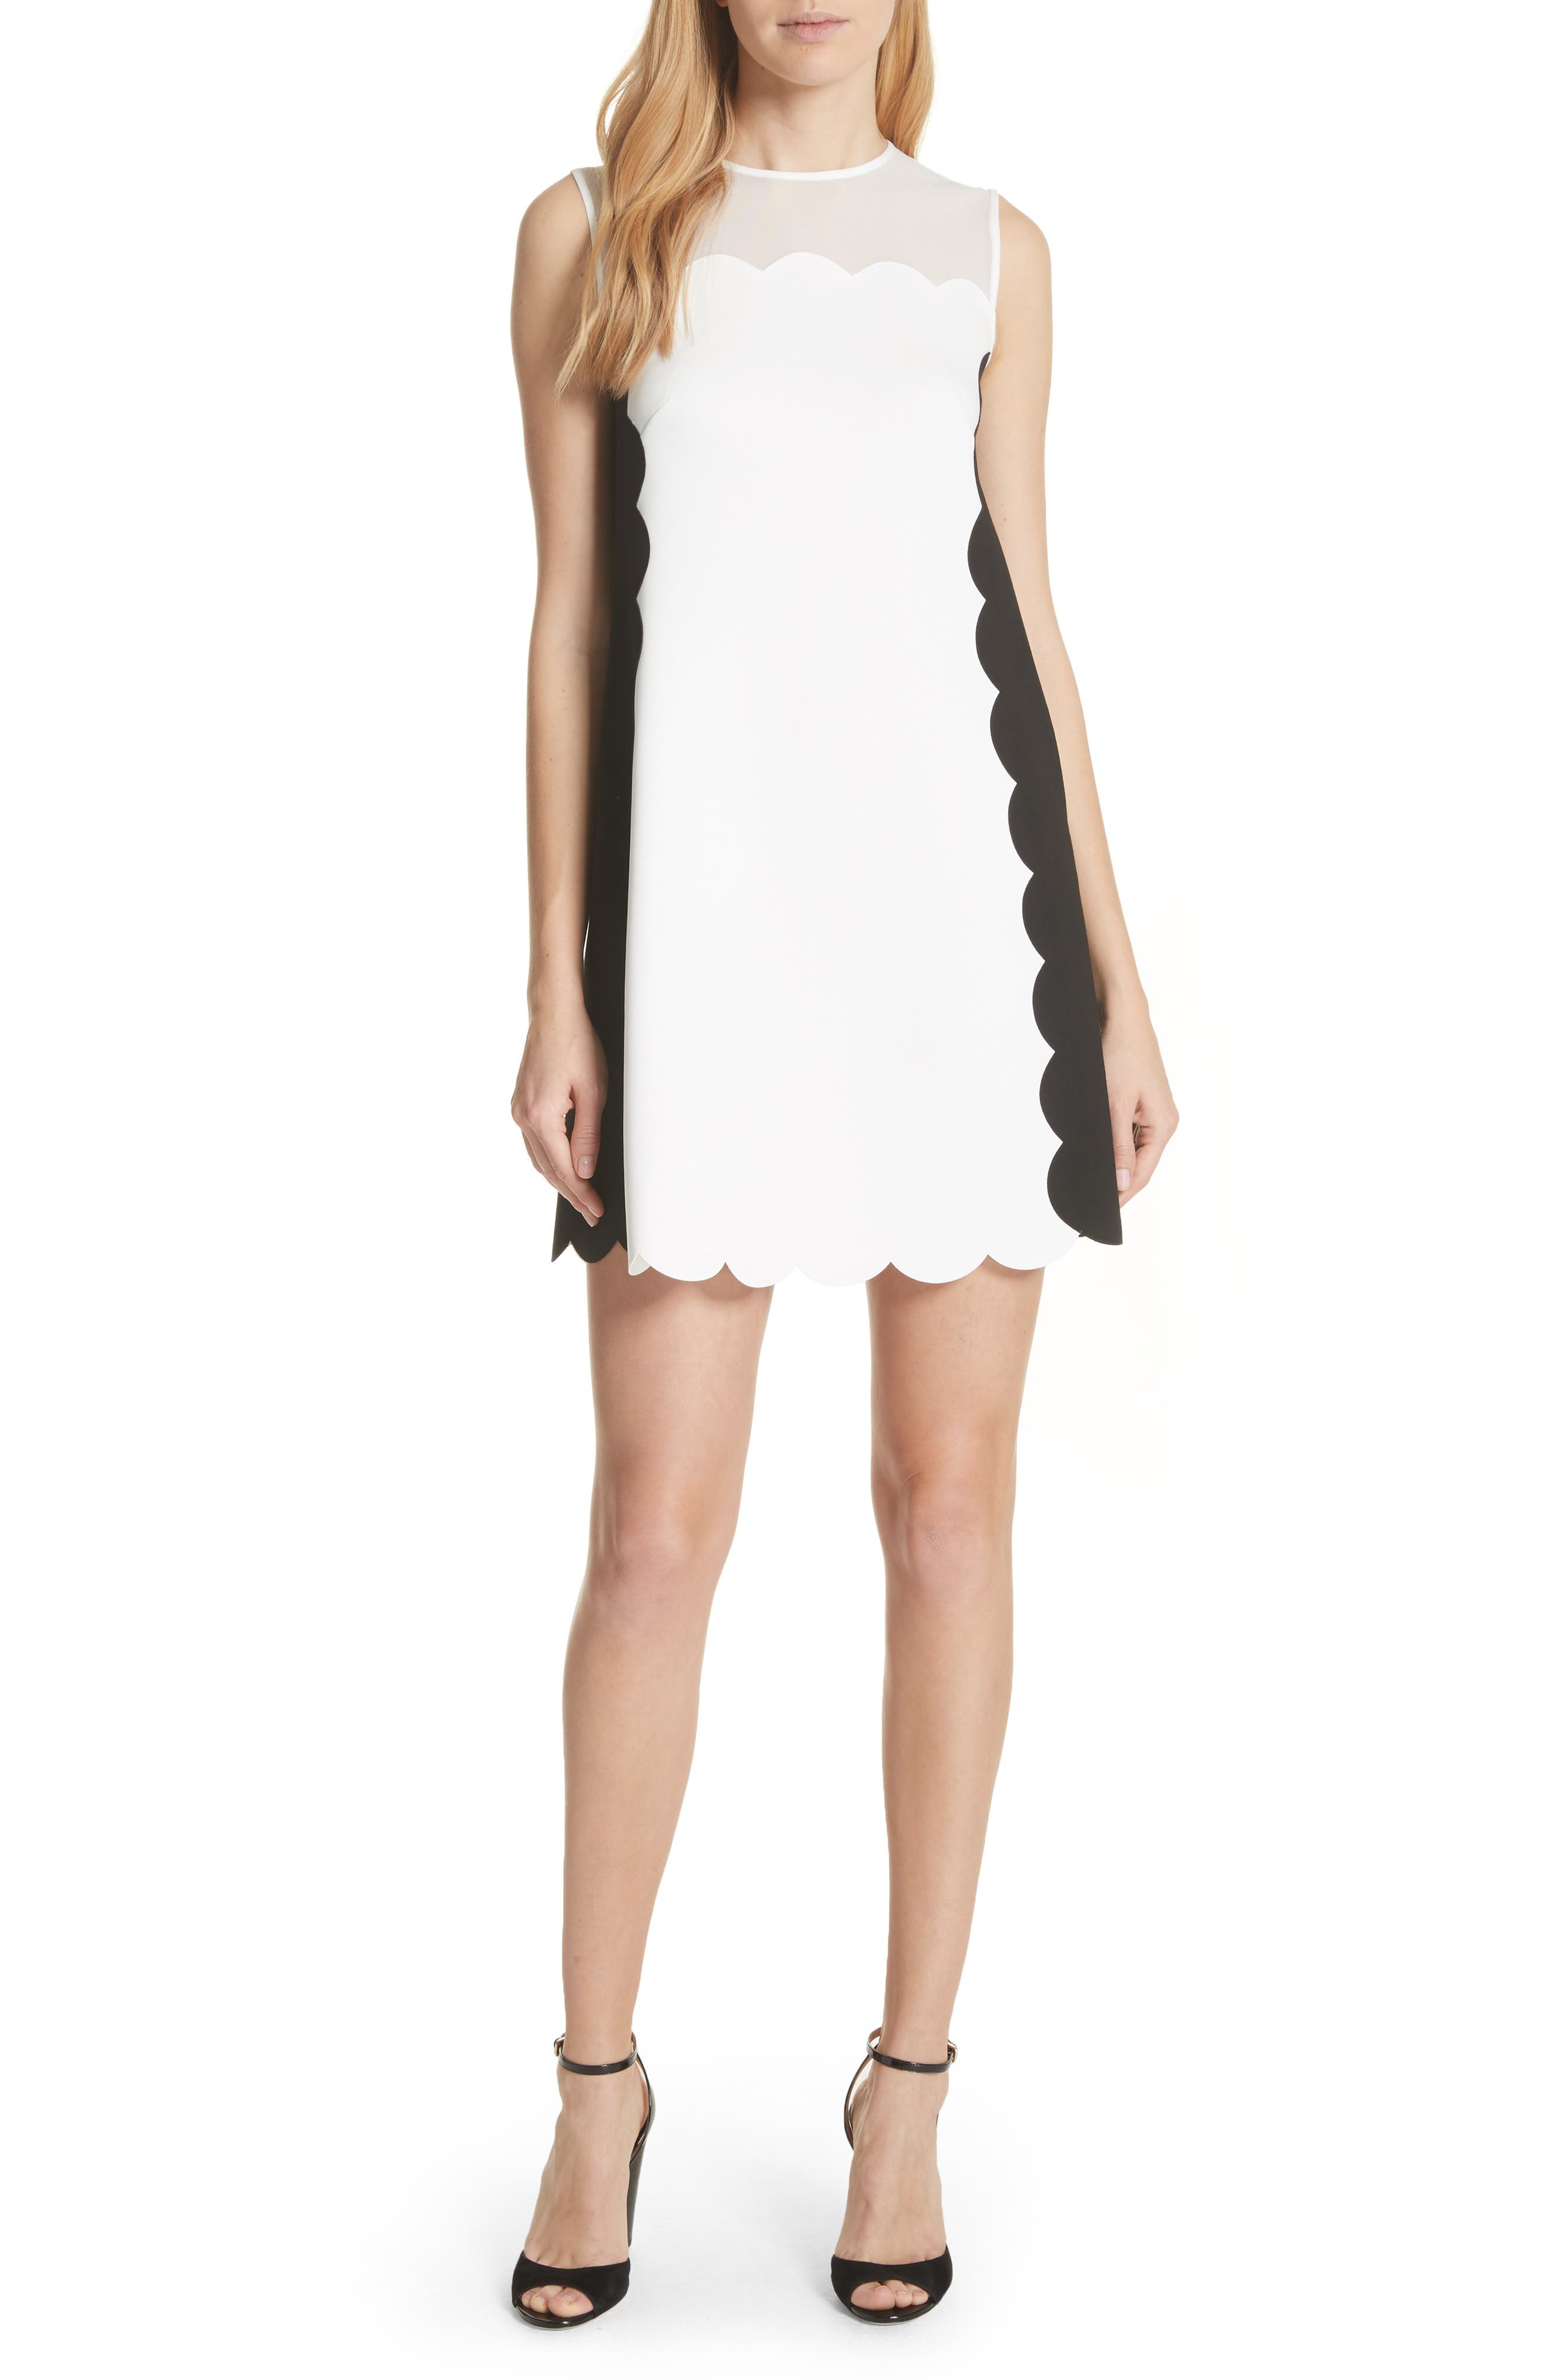 TED BAKER LONDON Contrast Scallop Overlay A-Line Dress, Main, color, 100